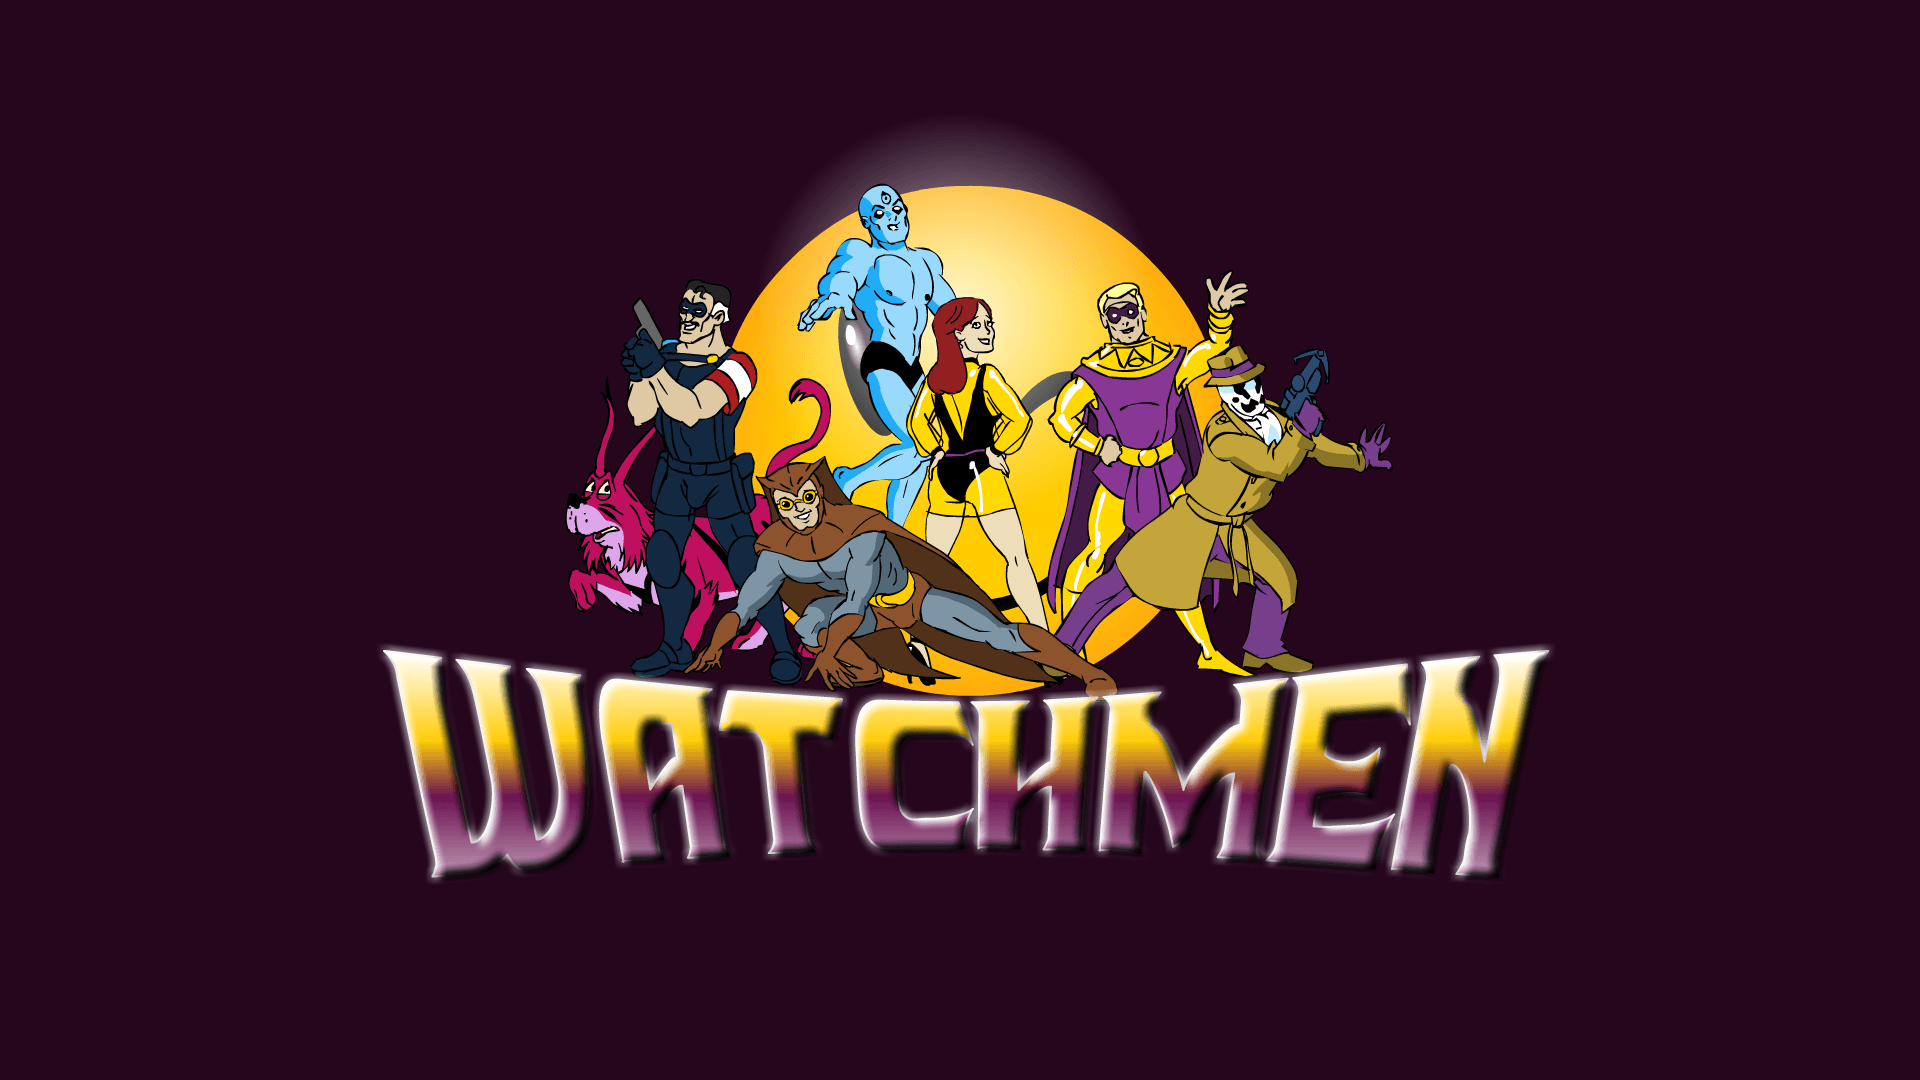 Watchmen Full HD Wallpapers and Backgrounds Image